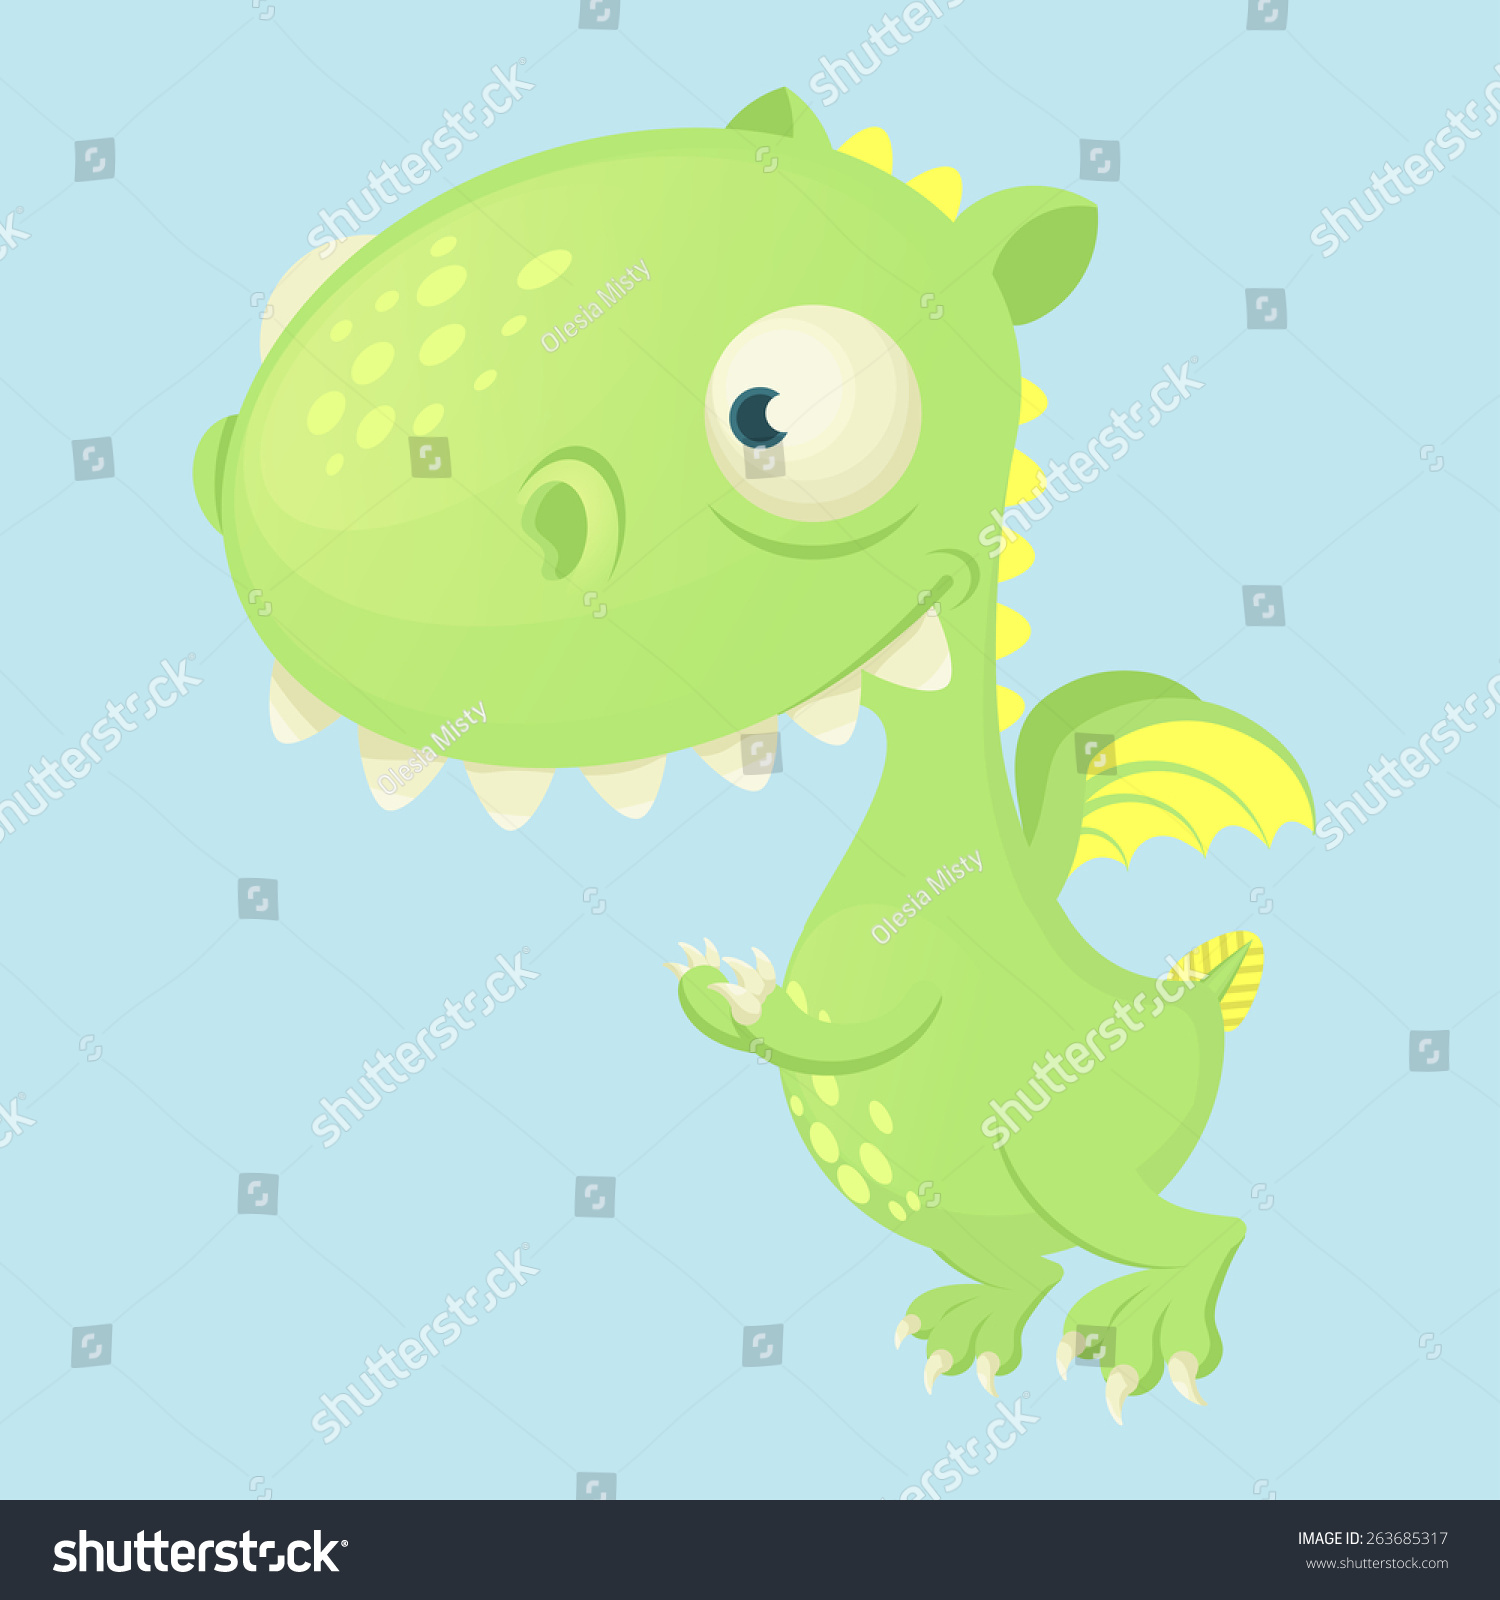 Cute Cartoon Vector Dragon With Big Head And Small Wings